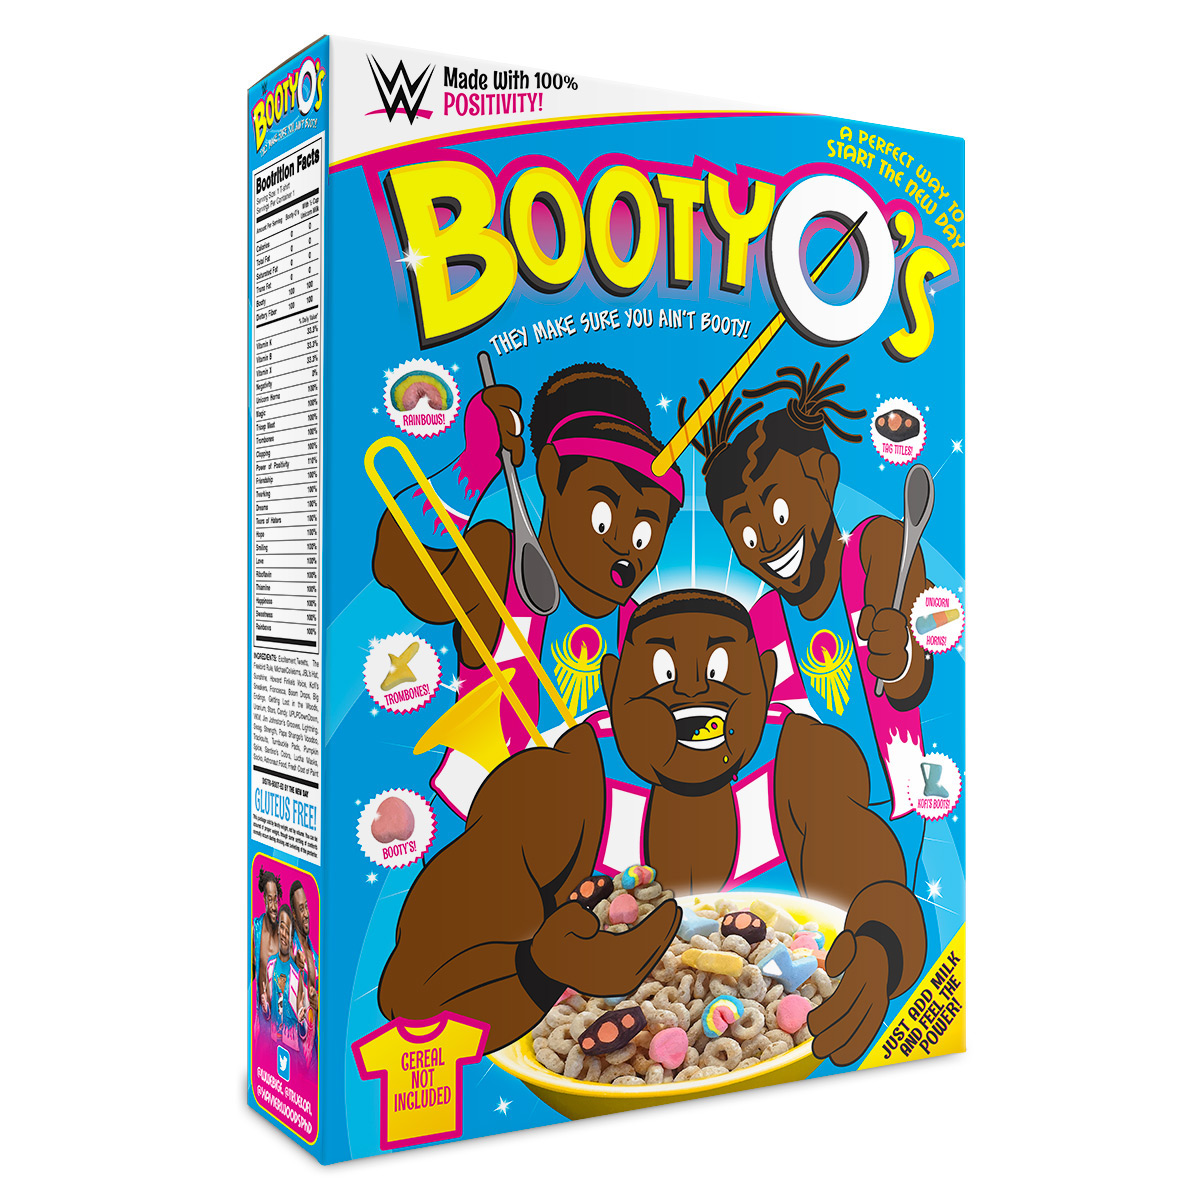 WWE: The New Day Booty-O's Cereal Box/t-shirt On Behance